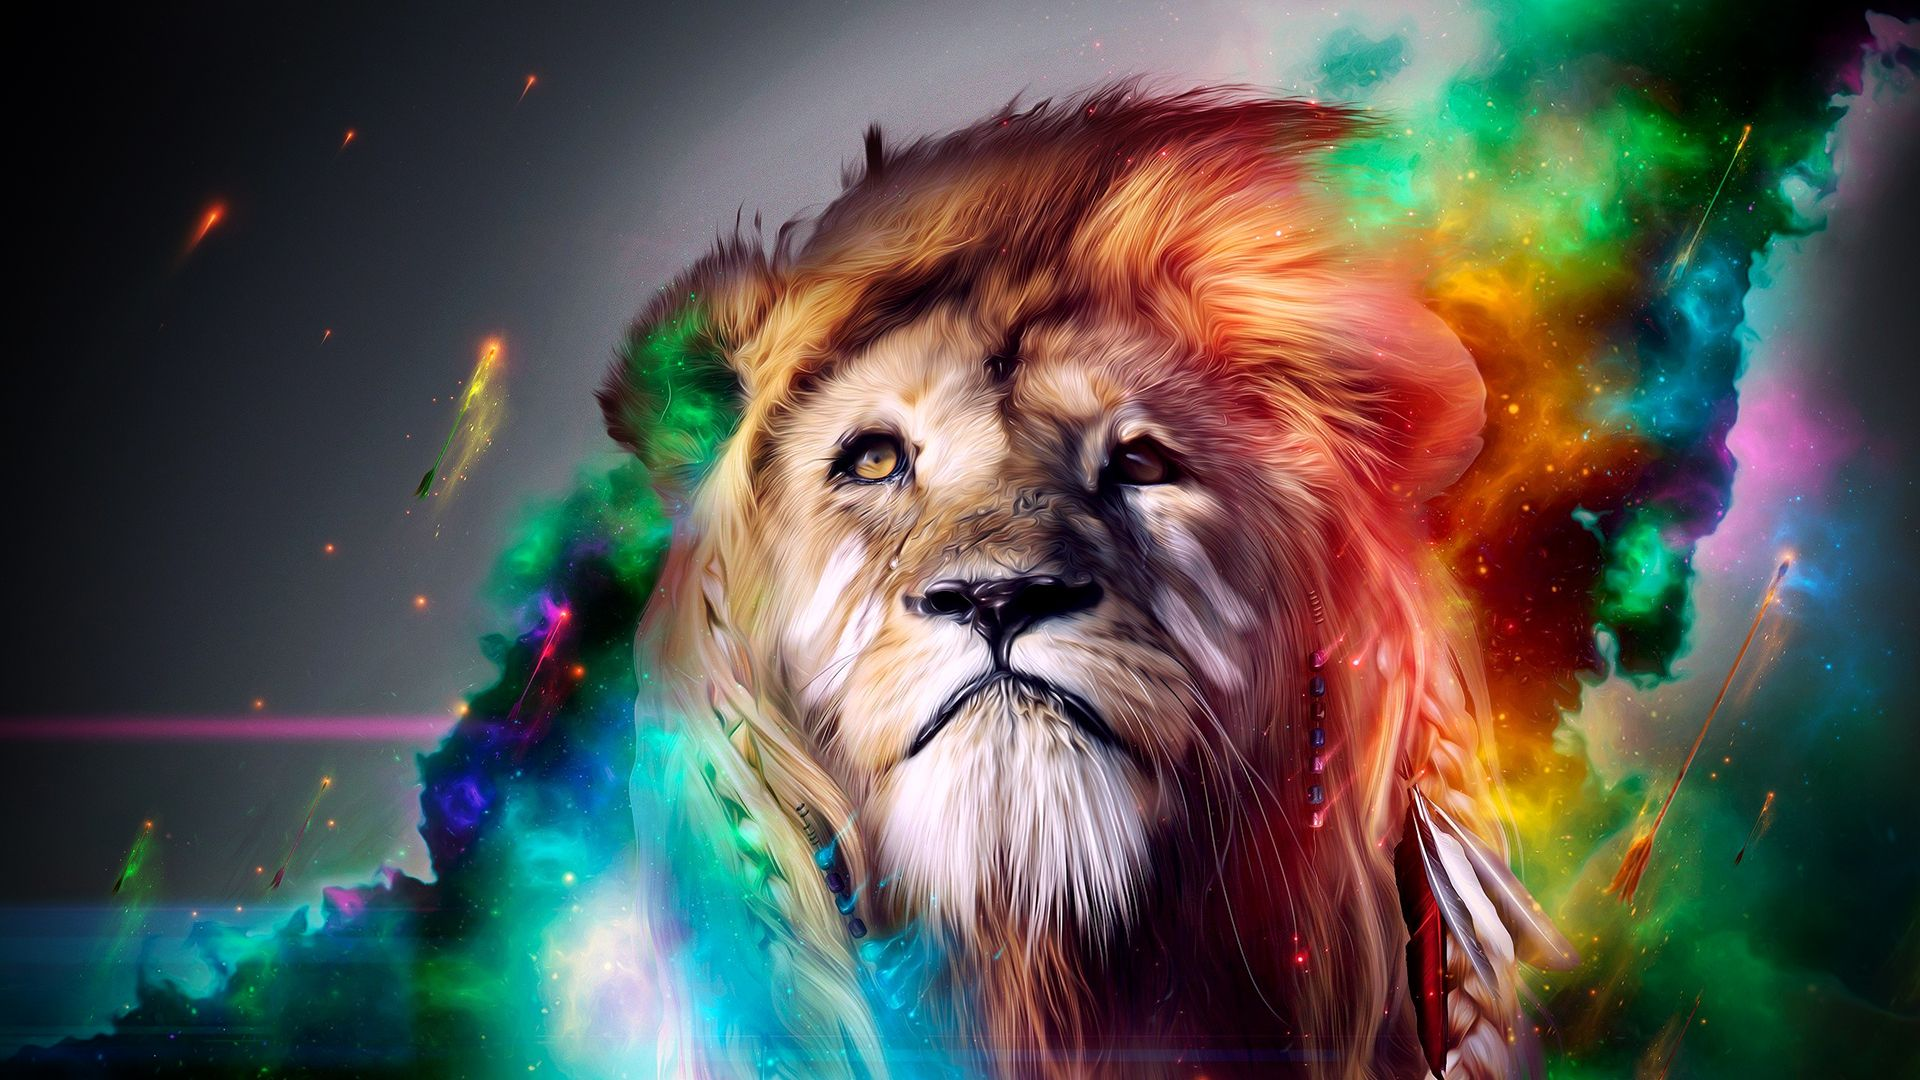 Pics For Hd Abstract Animal Wallpapers Colorful Lion Abstract